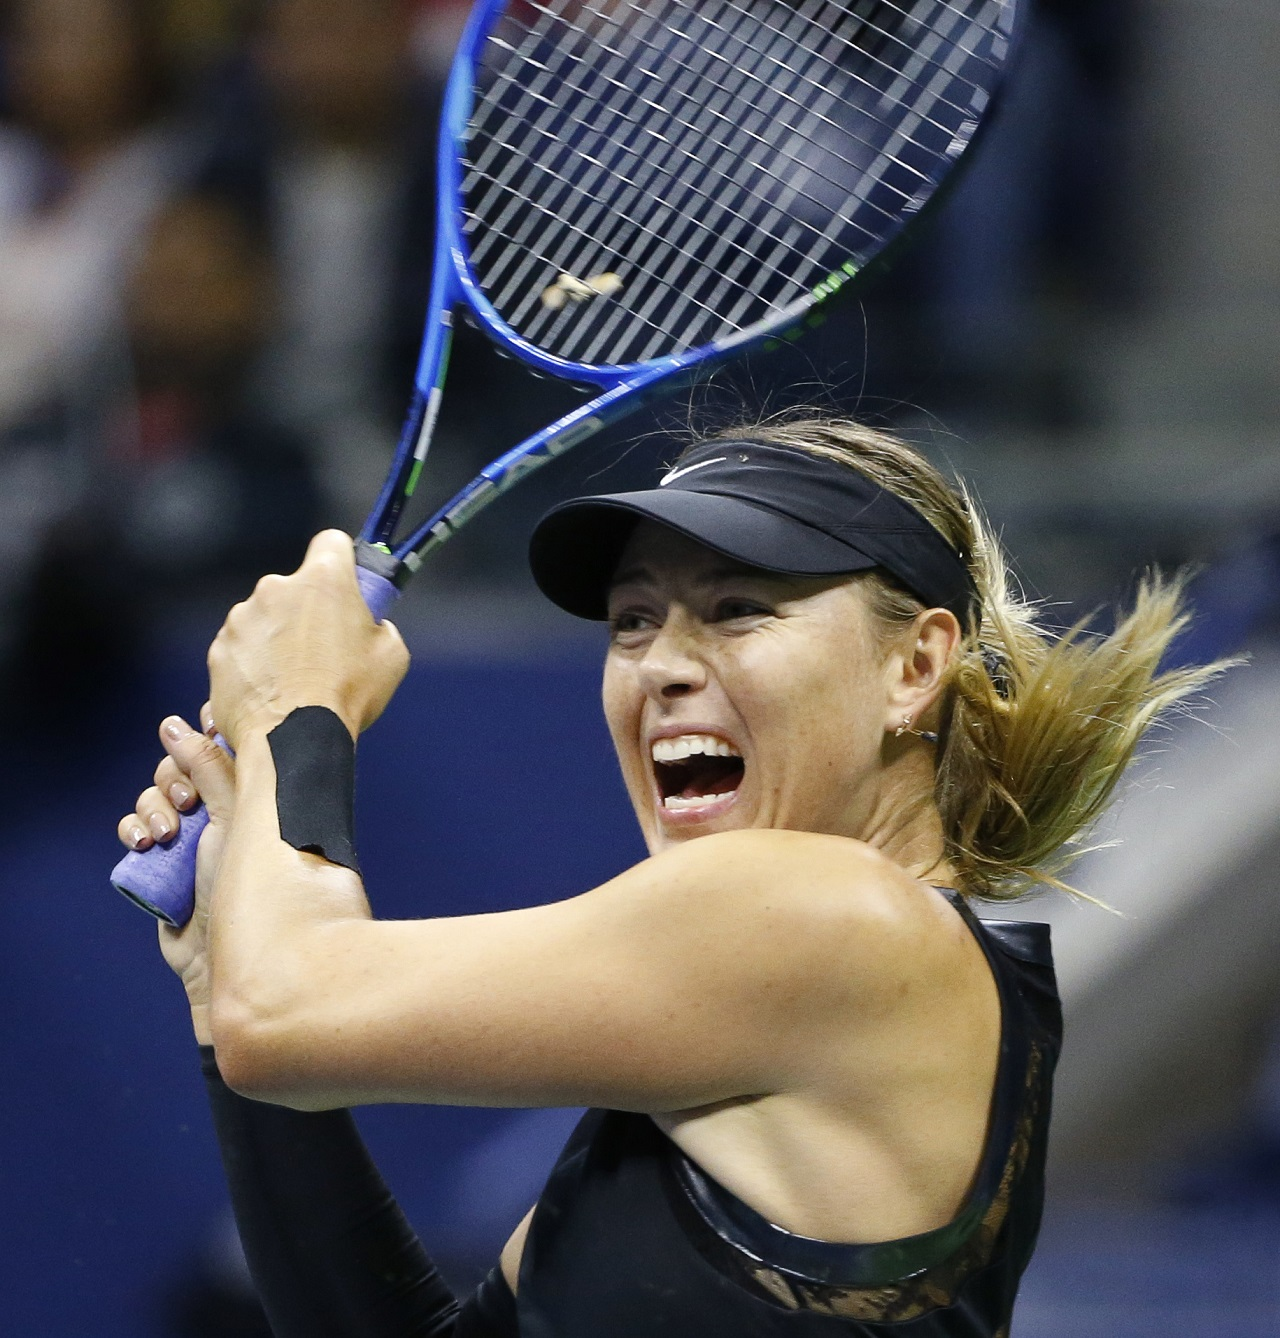 Maria Sharapova, of Russia, follows through on a shot to Sofia Kenin, of the United States, in the first-set tiebreak at the U.S. Open tennis tournament in New York, Friday, Sept. 1, 2017.